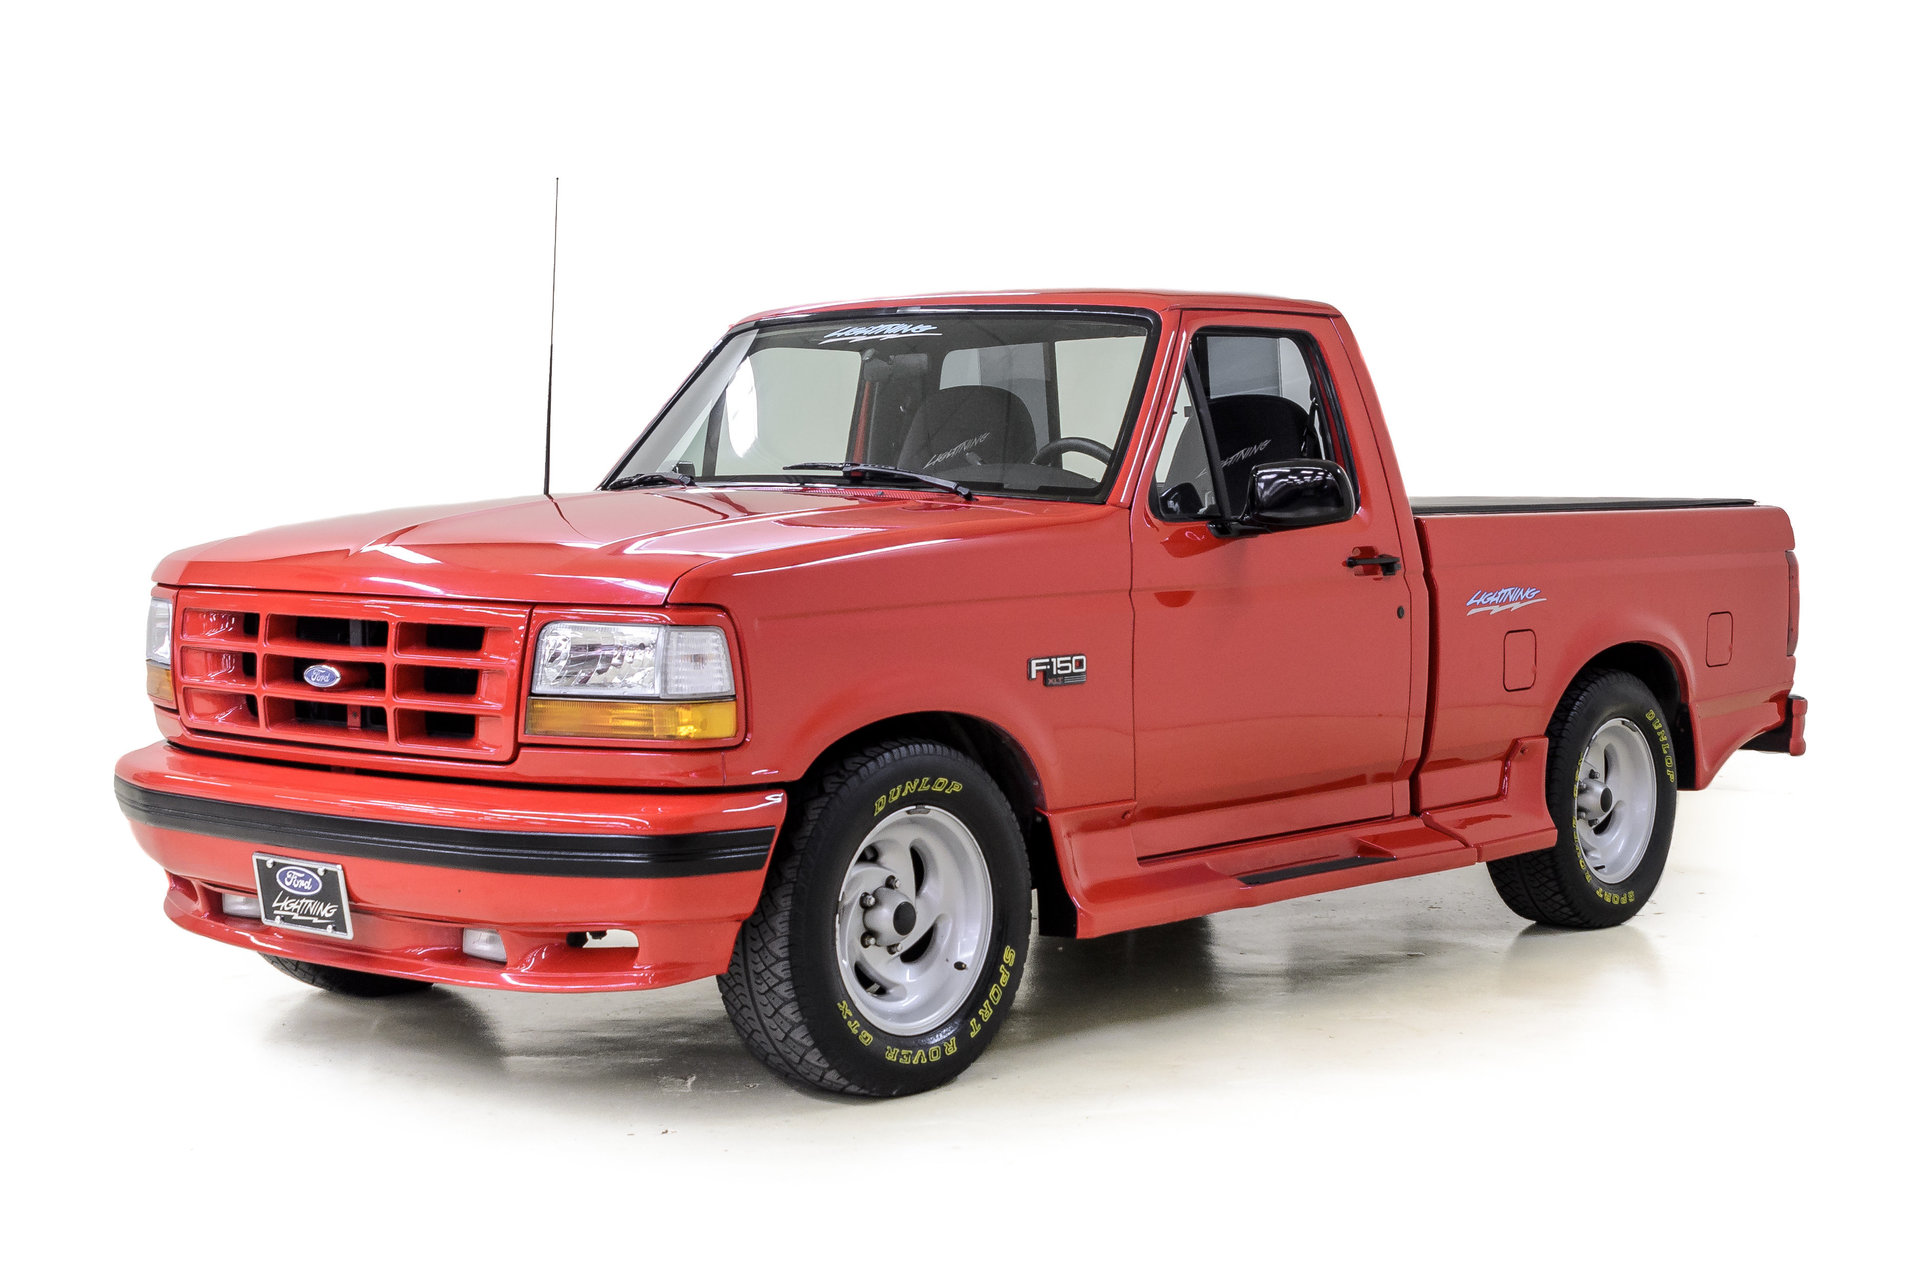 1993 ford f150 xlt lightning for sale 86715 mcg. Black Bedroom Furniture Sets. Home Design Ideas